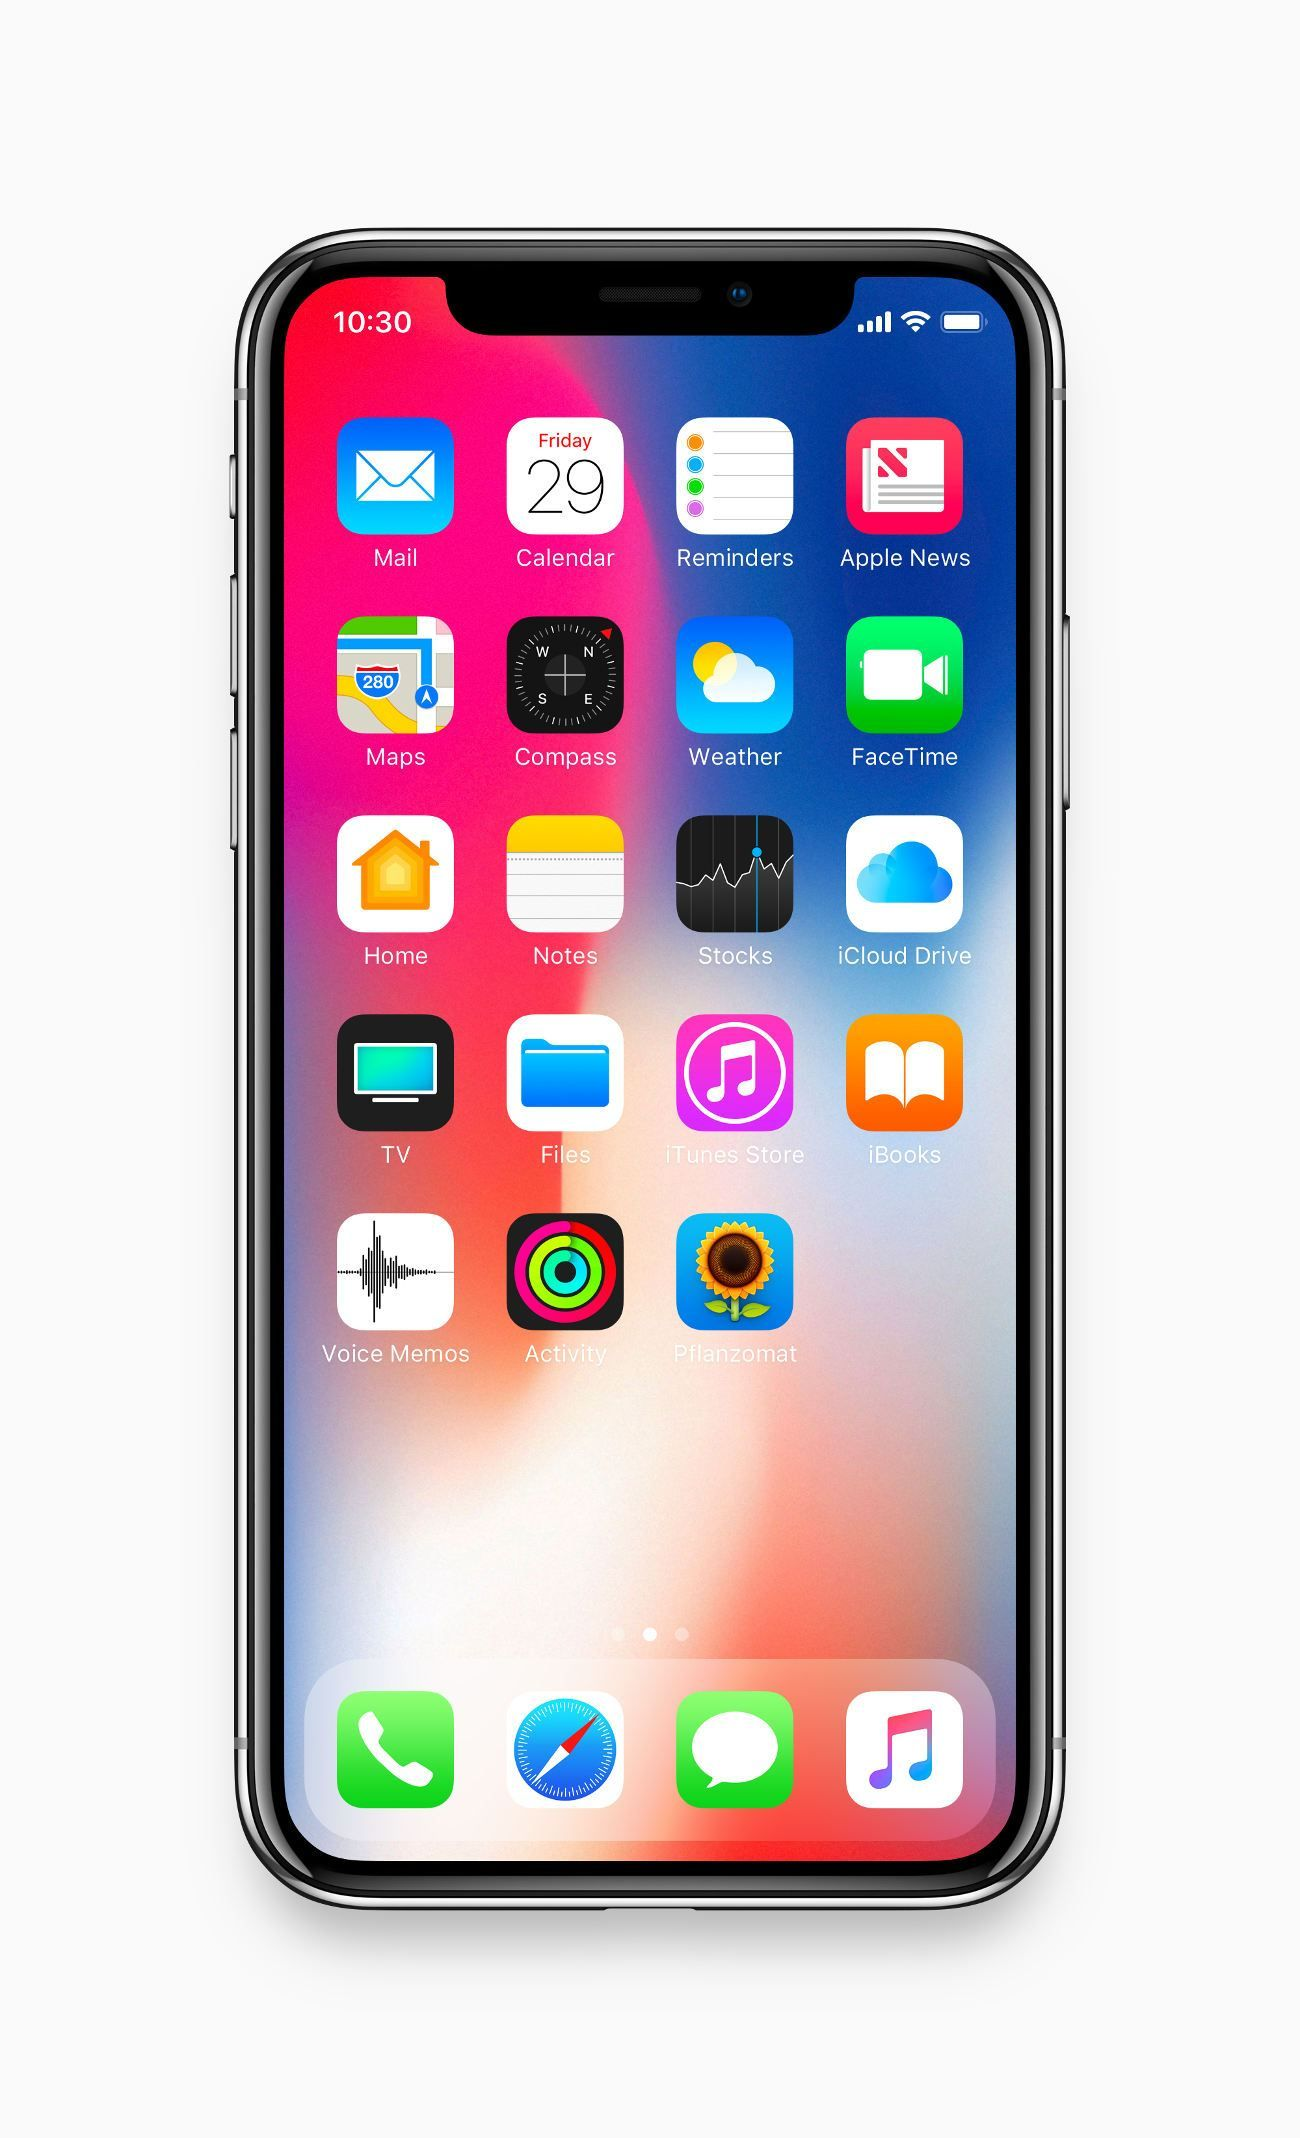 Iphone X Mockup Fit 2436 X 1125 Pixel Resolution Omahpsd Tempered Glass Screen Protector Glass Screen Protector Screen Repair